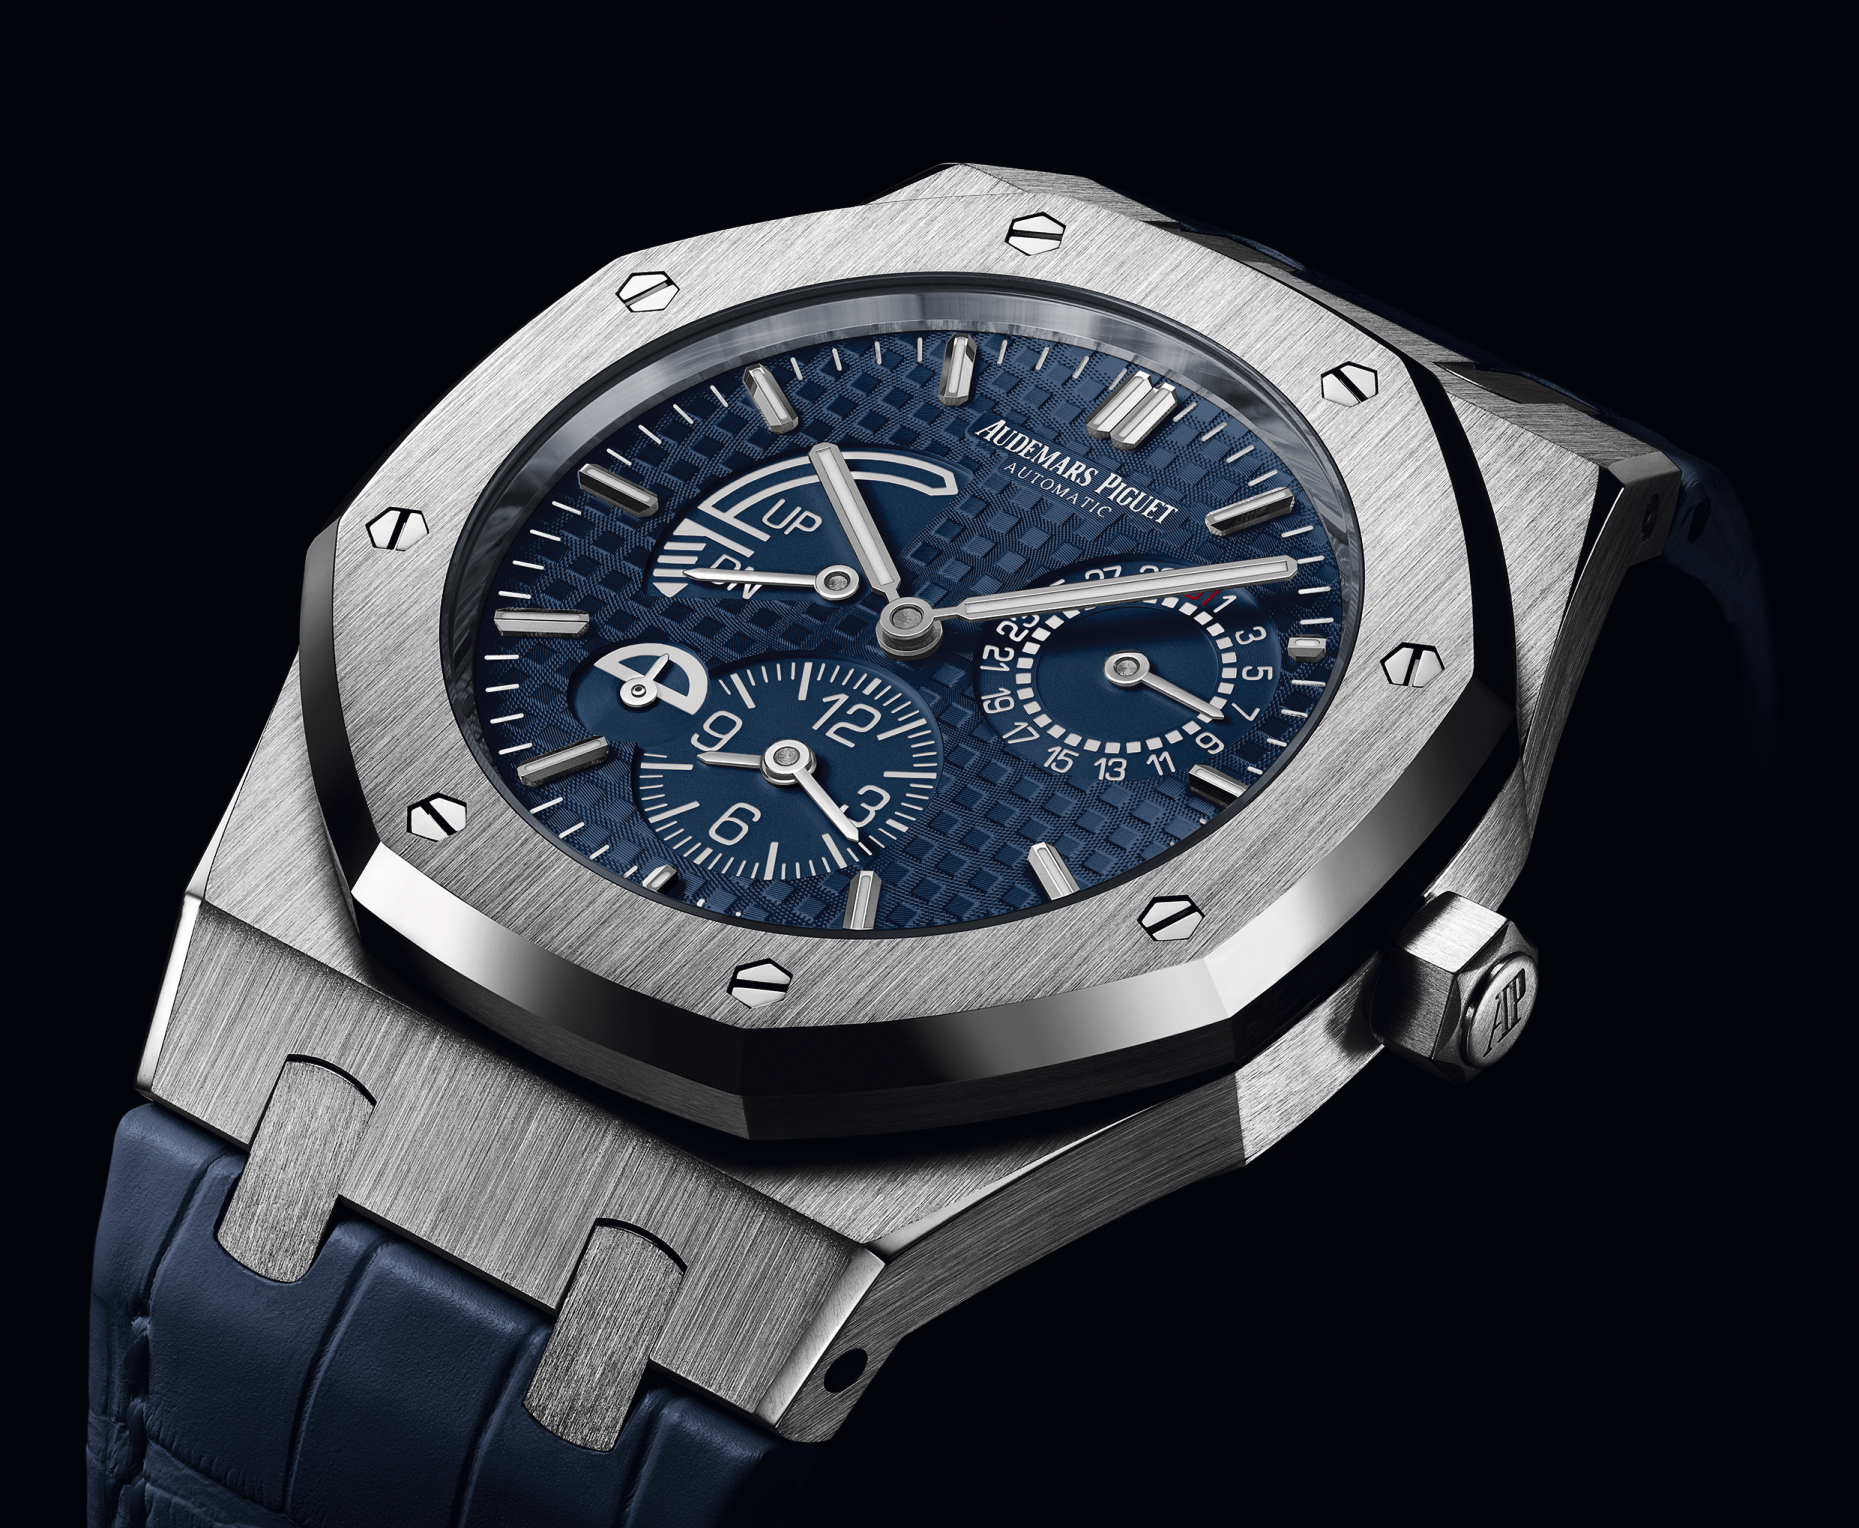 Top Luxury watch brand - Audemars Piguet